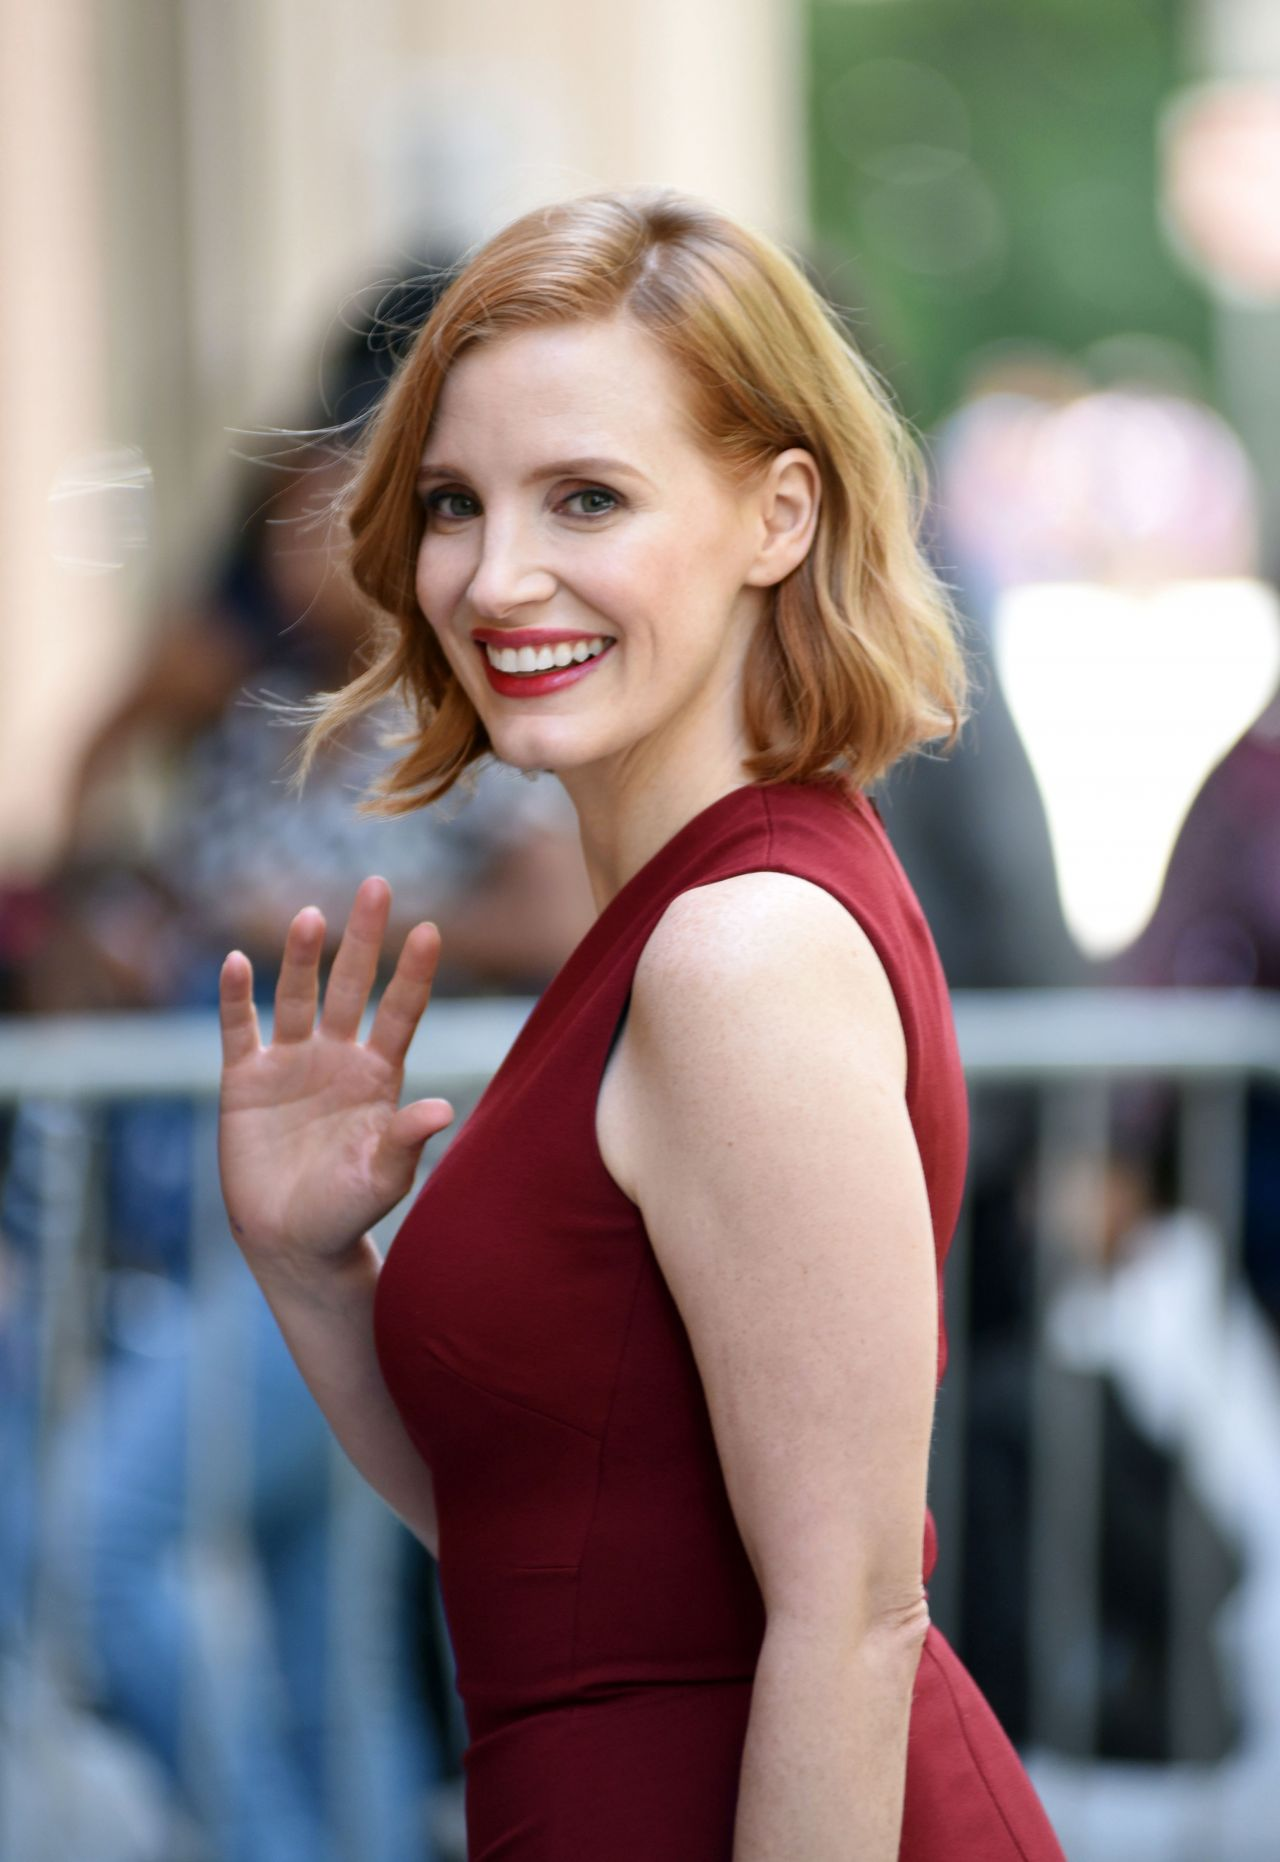 https://celebmafia.com/wp-content/uploads/2018/06/jessica-chastain-arriving-to-appear-on-the-view-and-buid-series-in-nyc-06-26-2018-1.jpg